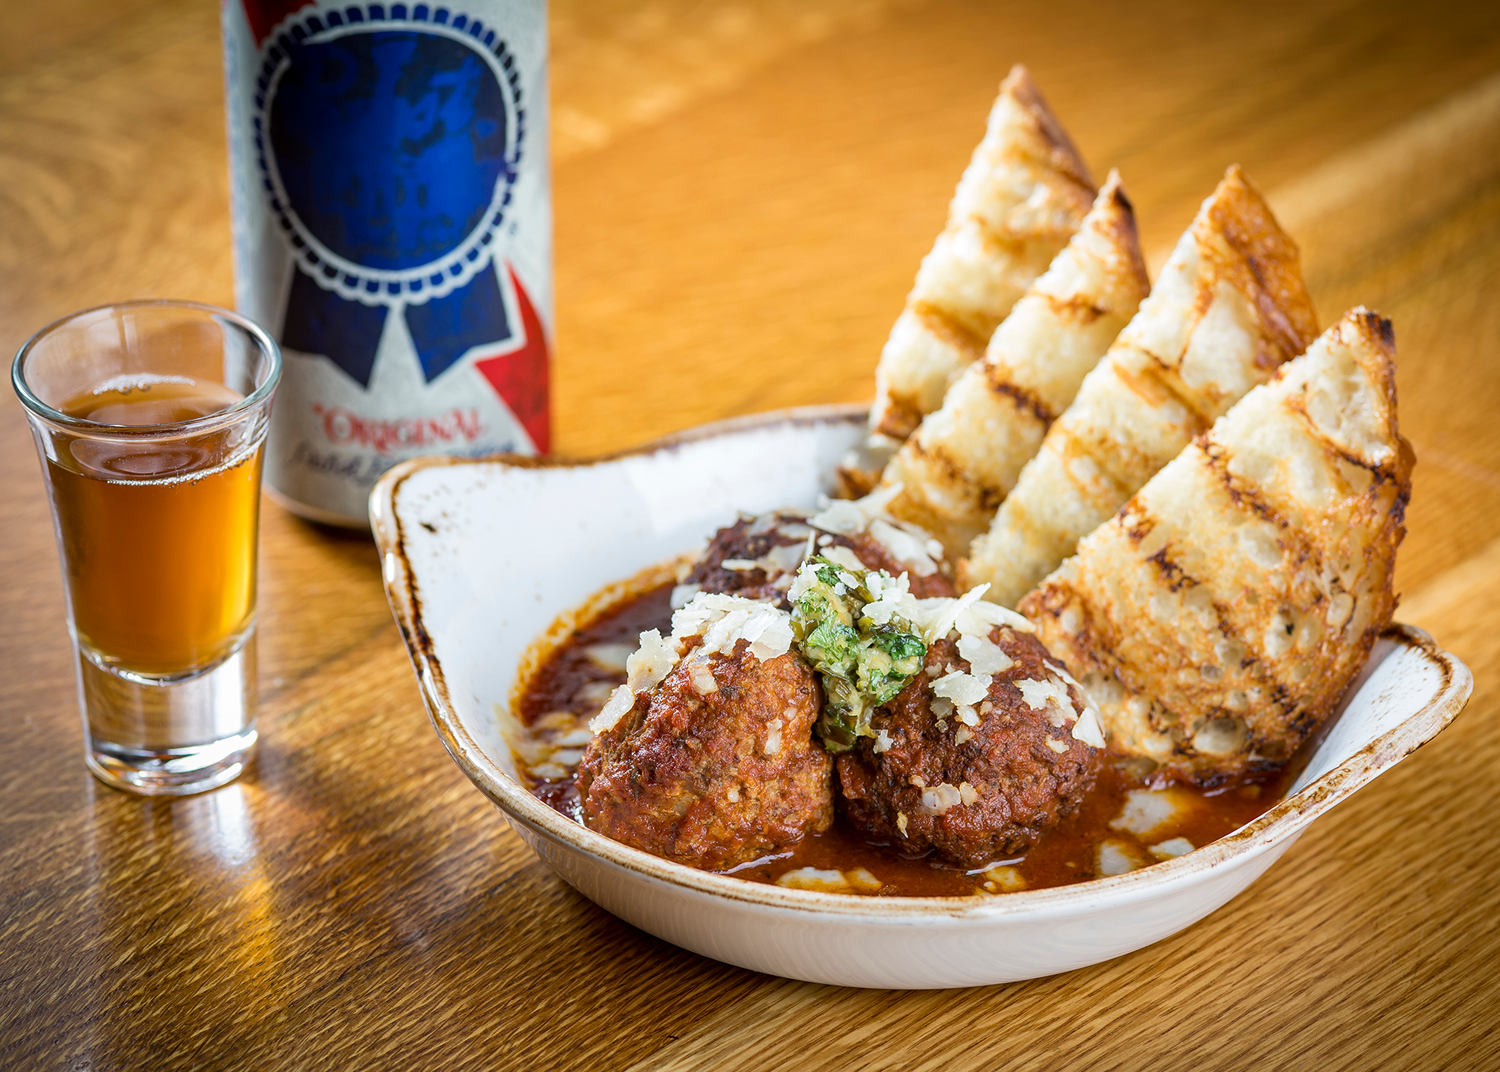 Meatballs-with-tallboy-and-a-shot